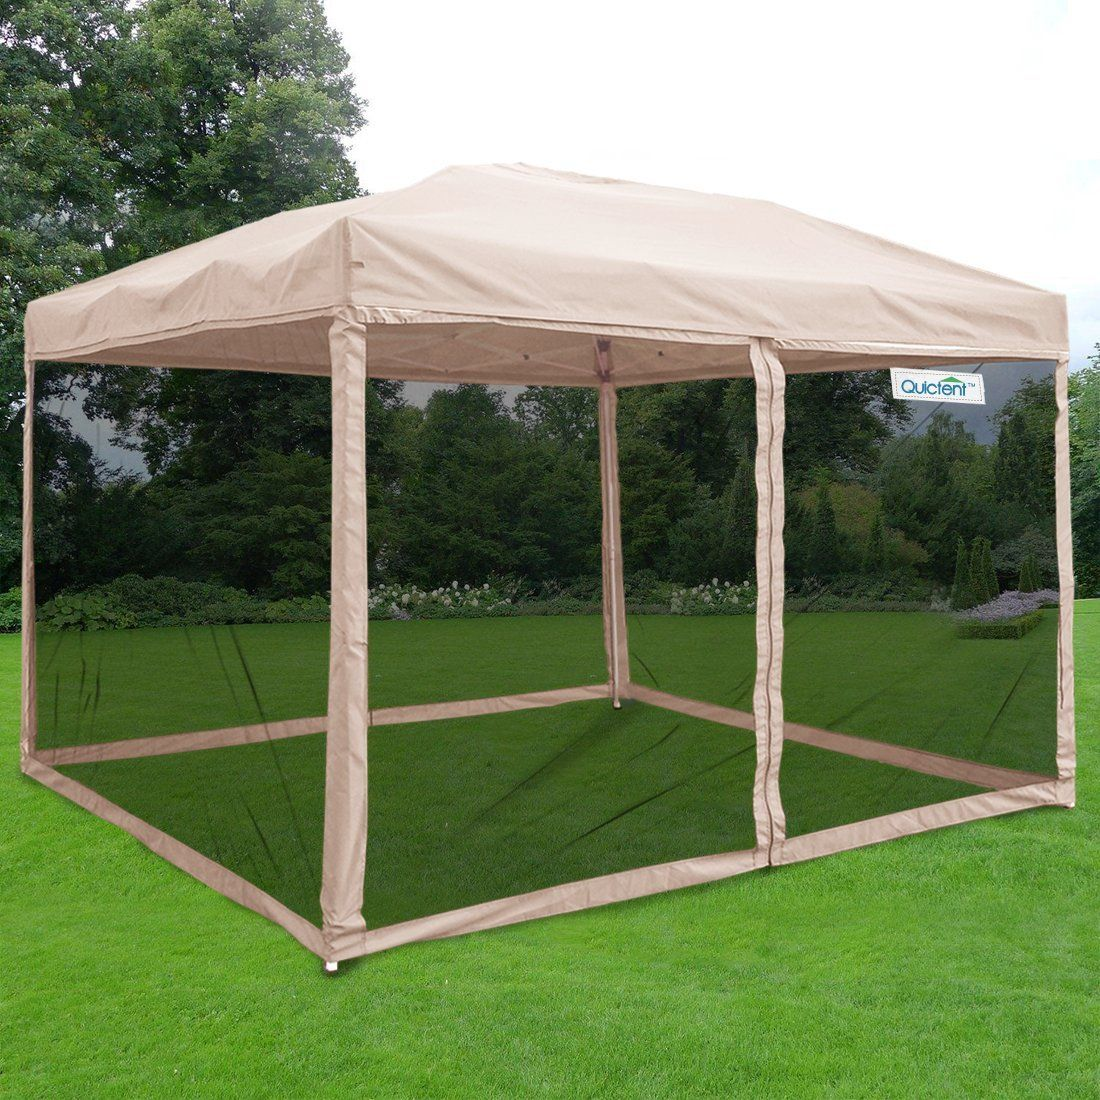 Todayu0027s deals Quictent Tan Ez Pop up Canopy Party Tent Commercial Instant Gazebos Mesh Sides deals week & Brand Lowest Price + Extra 8%OFF Free AccessoriesFree Delivery ...